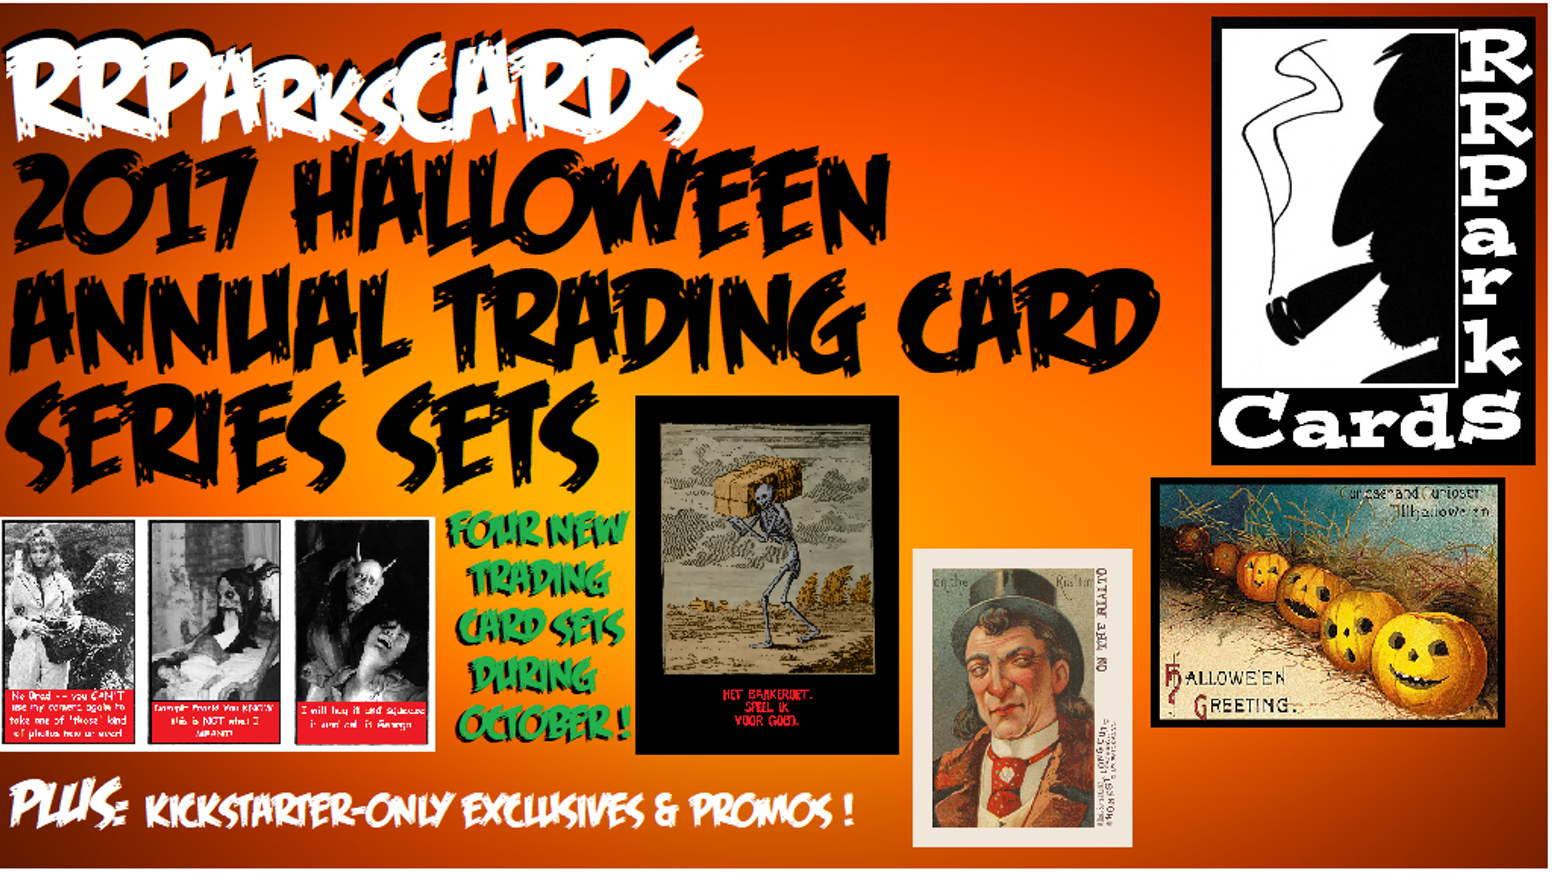 2017 halloween trading cards from rrparkscards